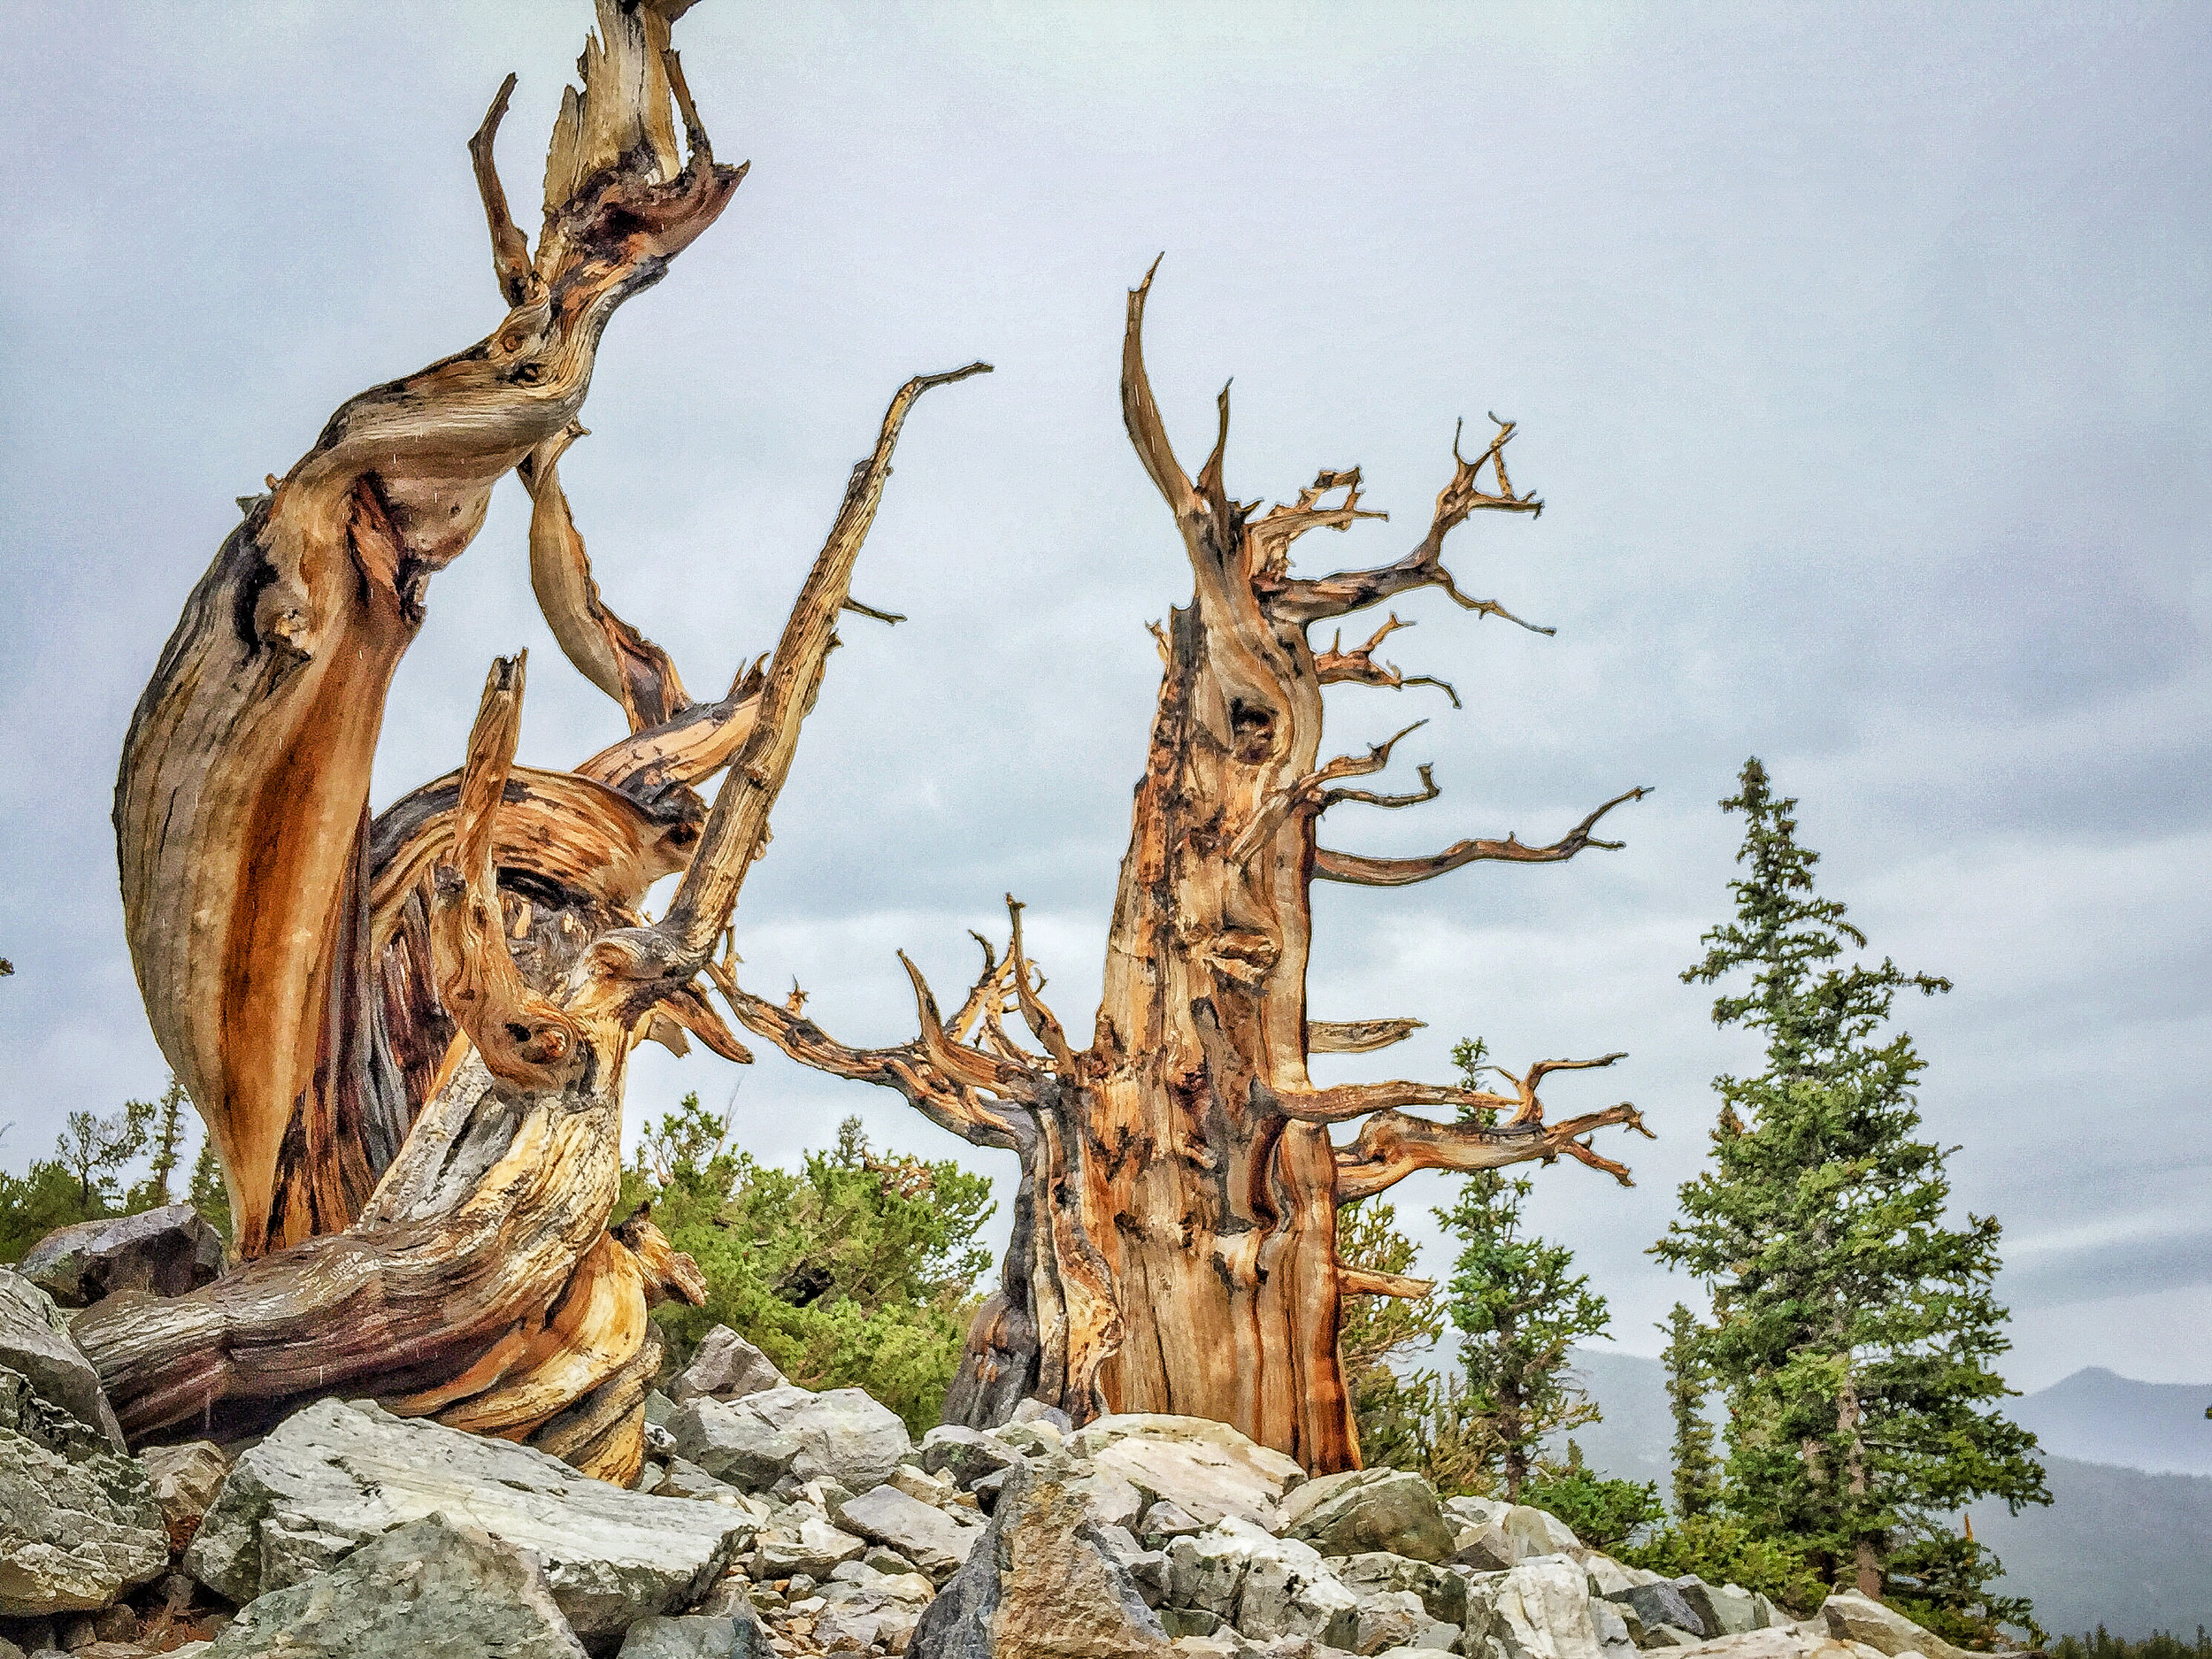 Bristlecone forest, Great Basin National Park, Nevada.